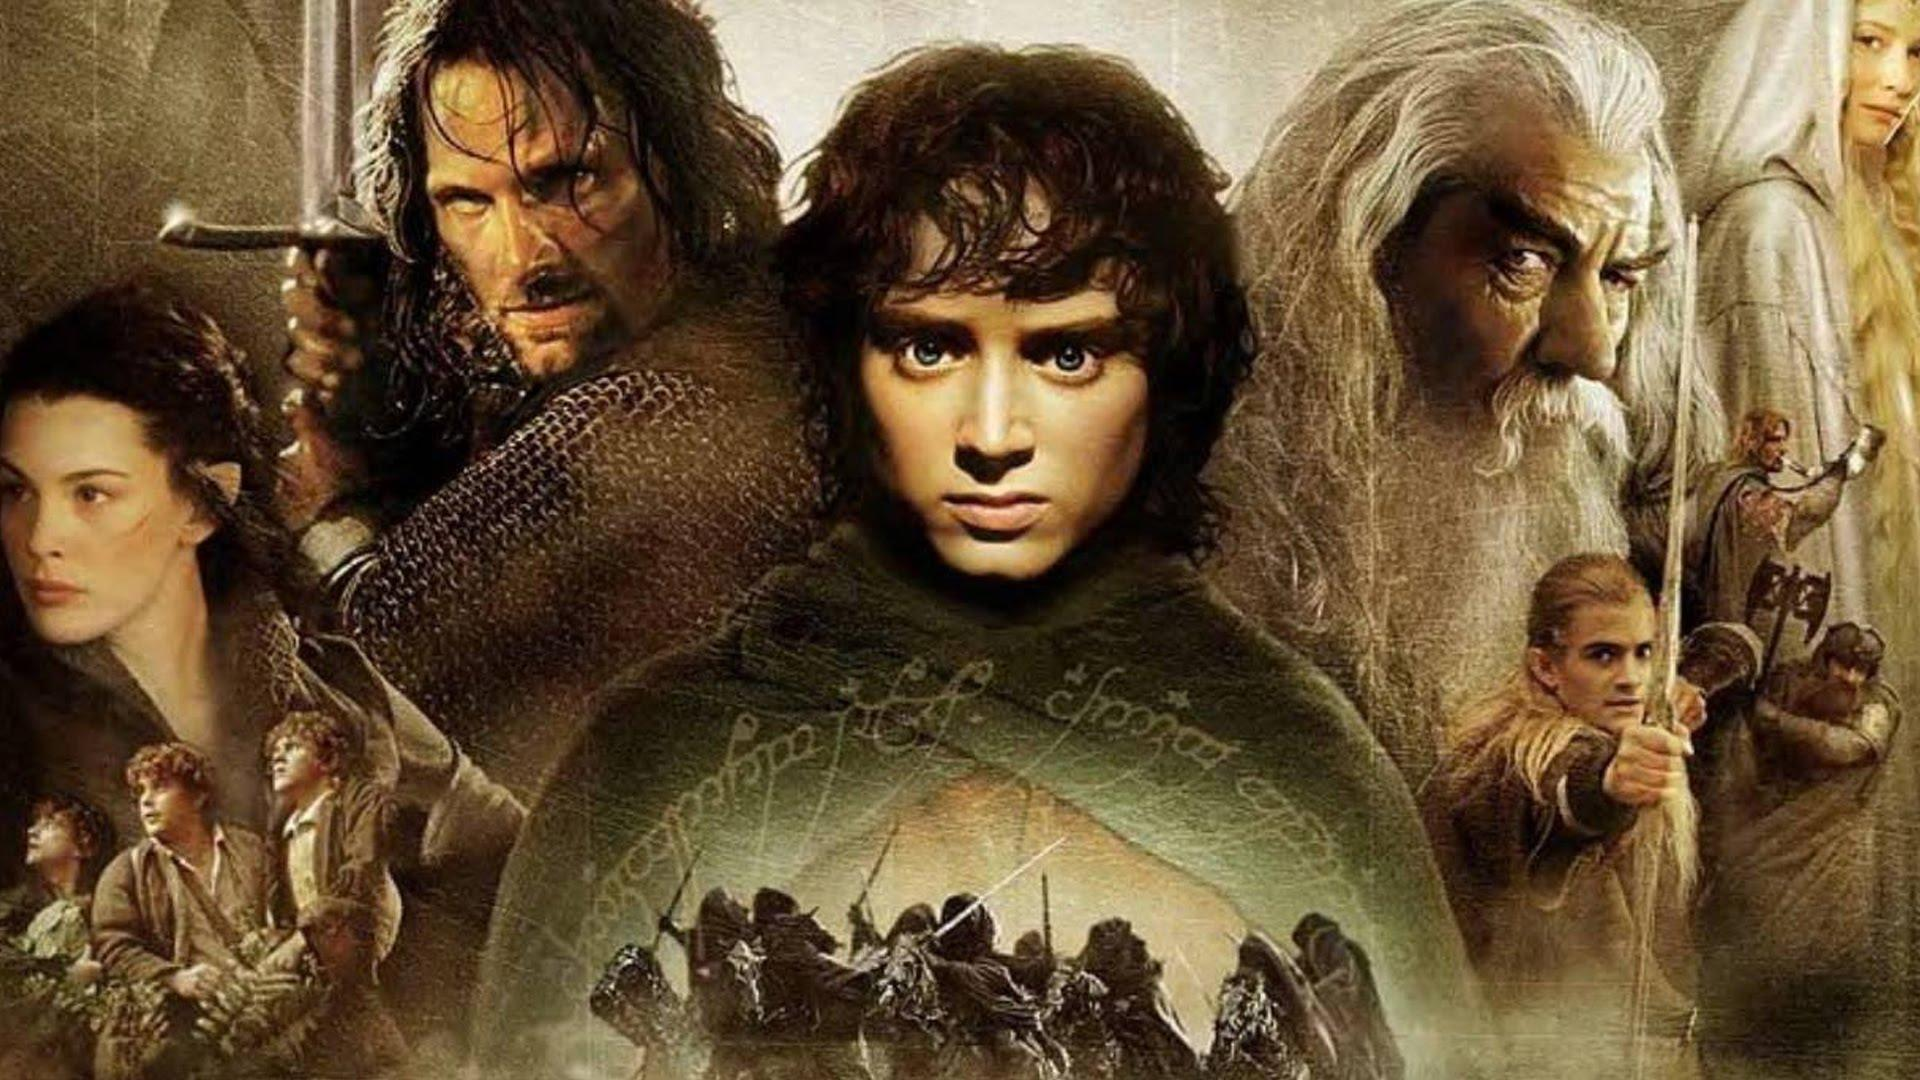 Amazon Game Studios is Developing a Lord of the Rings MMORPG